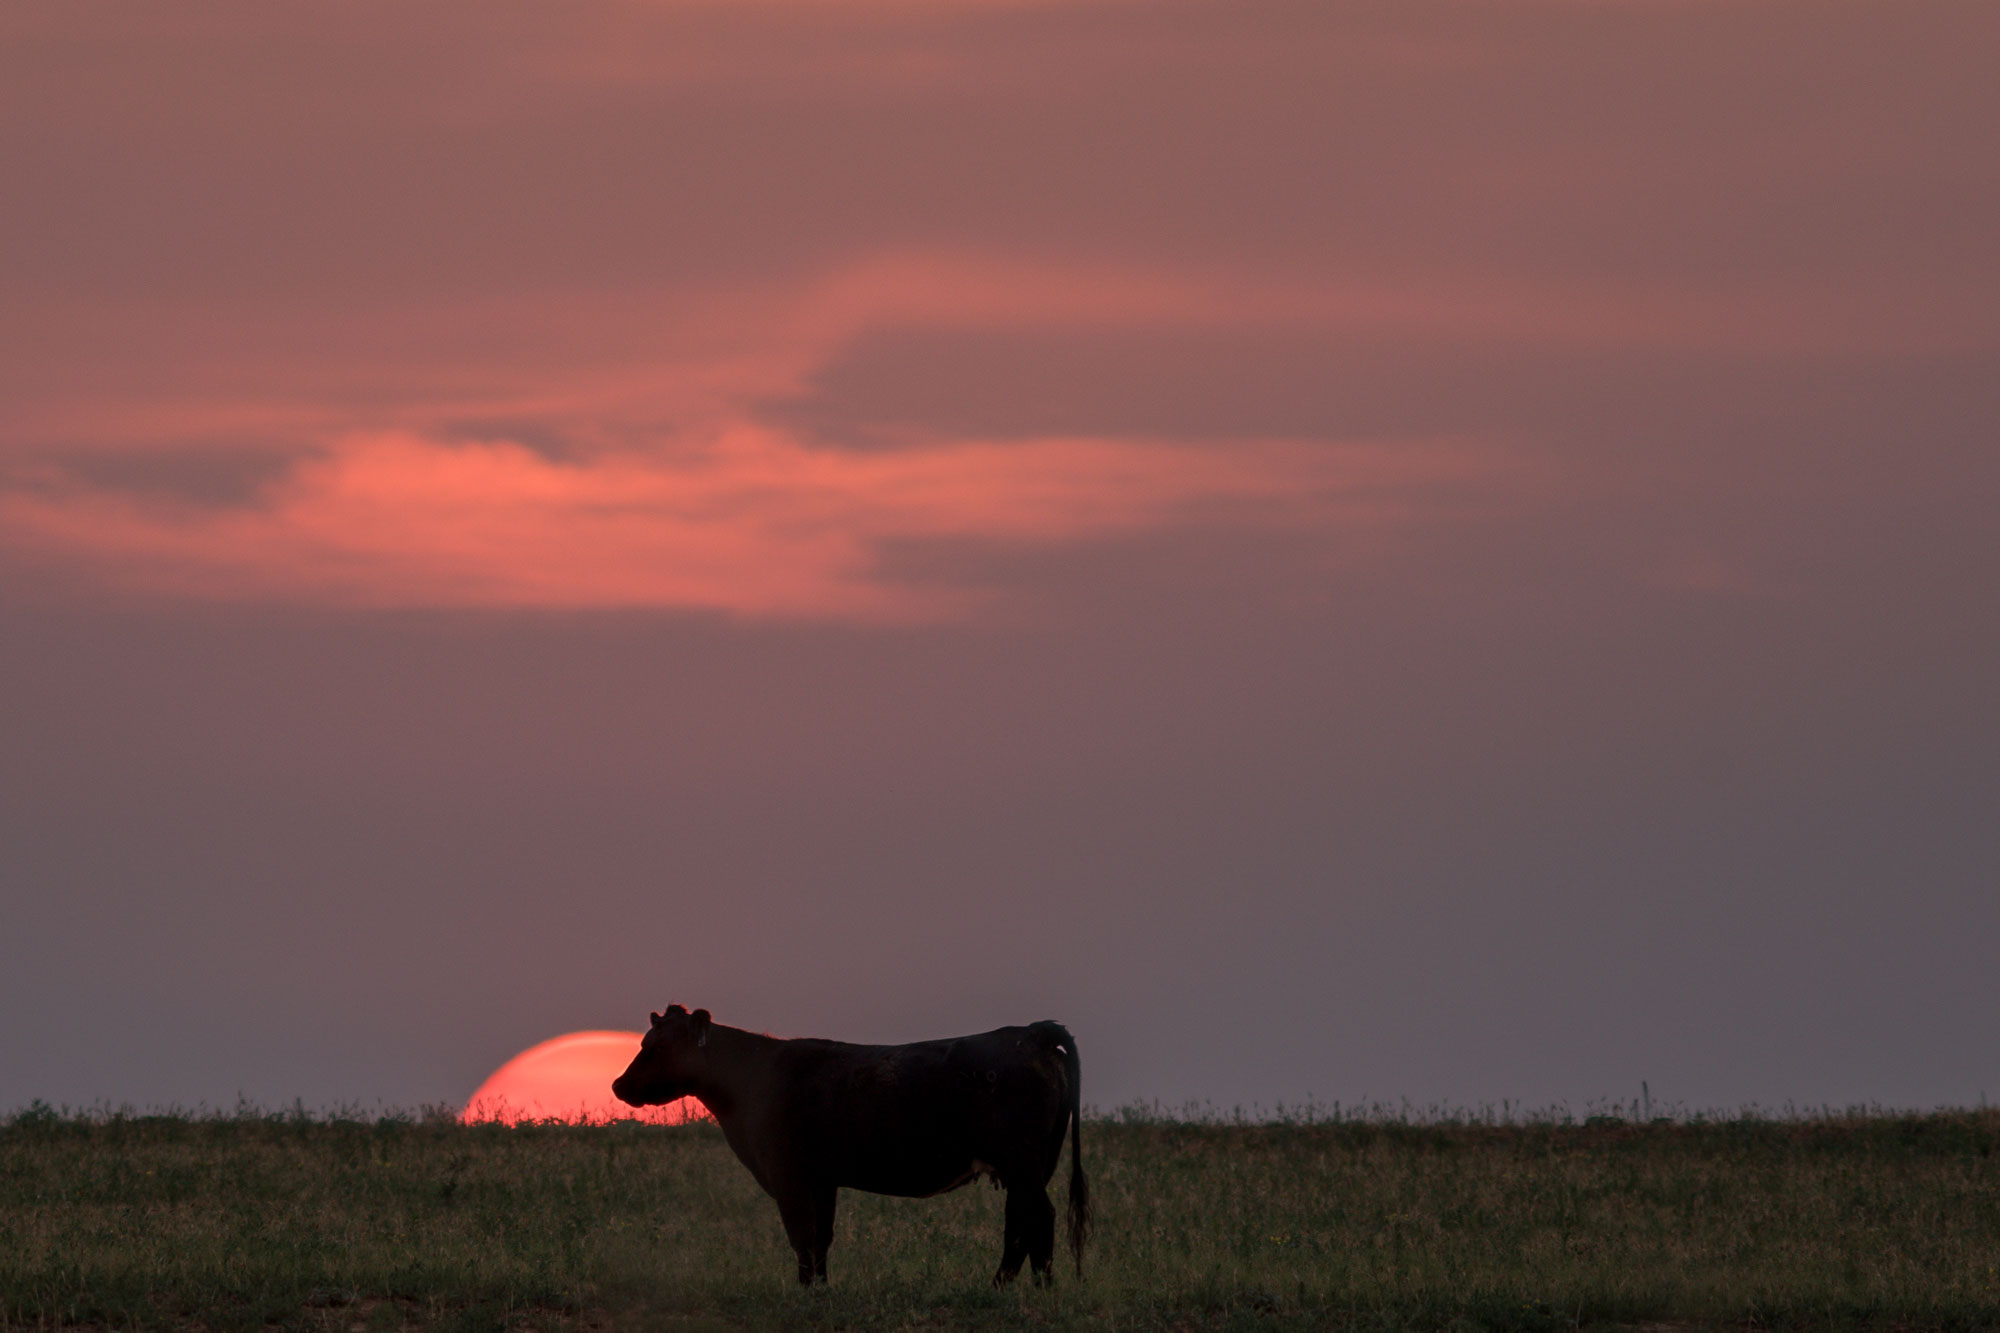 Cow standing in pasture at sunset.